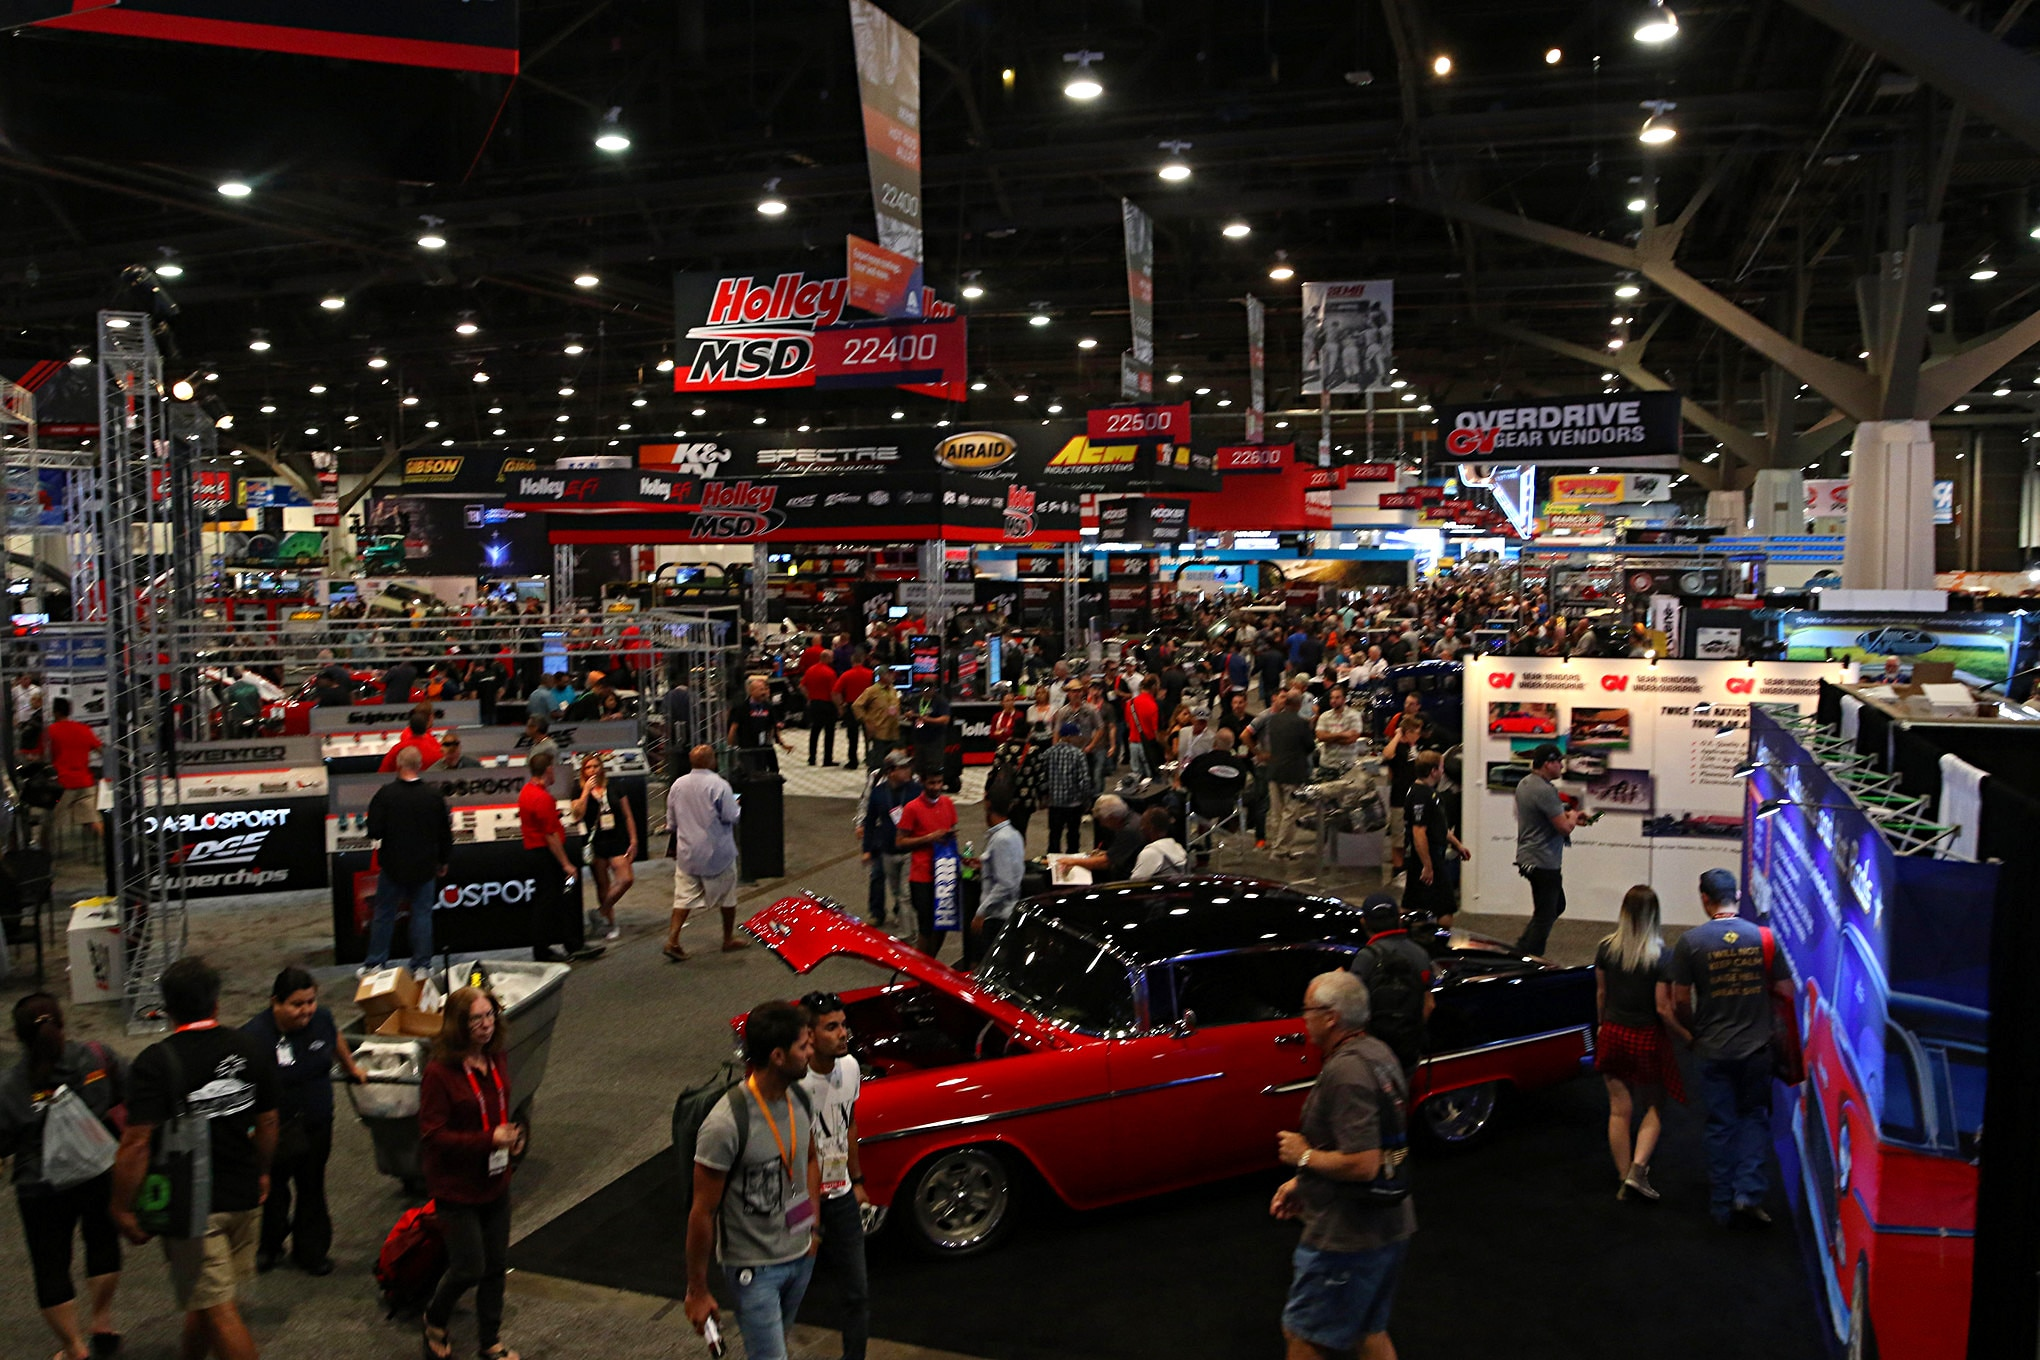 As large as outside is at SEMA, it pales in comparison to inside. To say that the place is gigantic is an understatement.